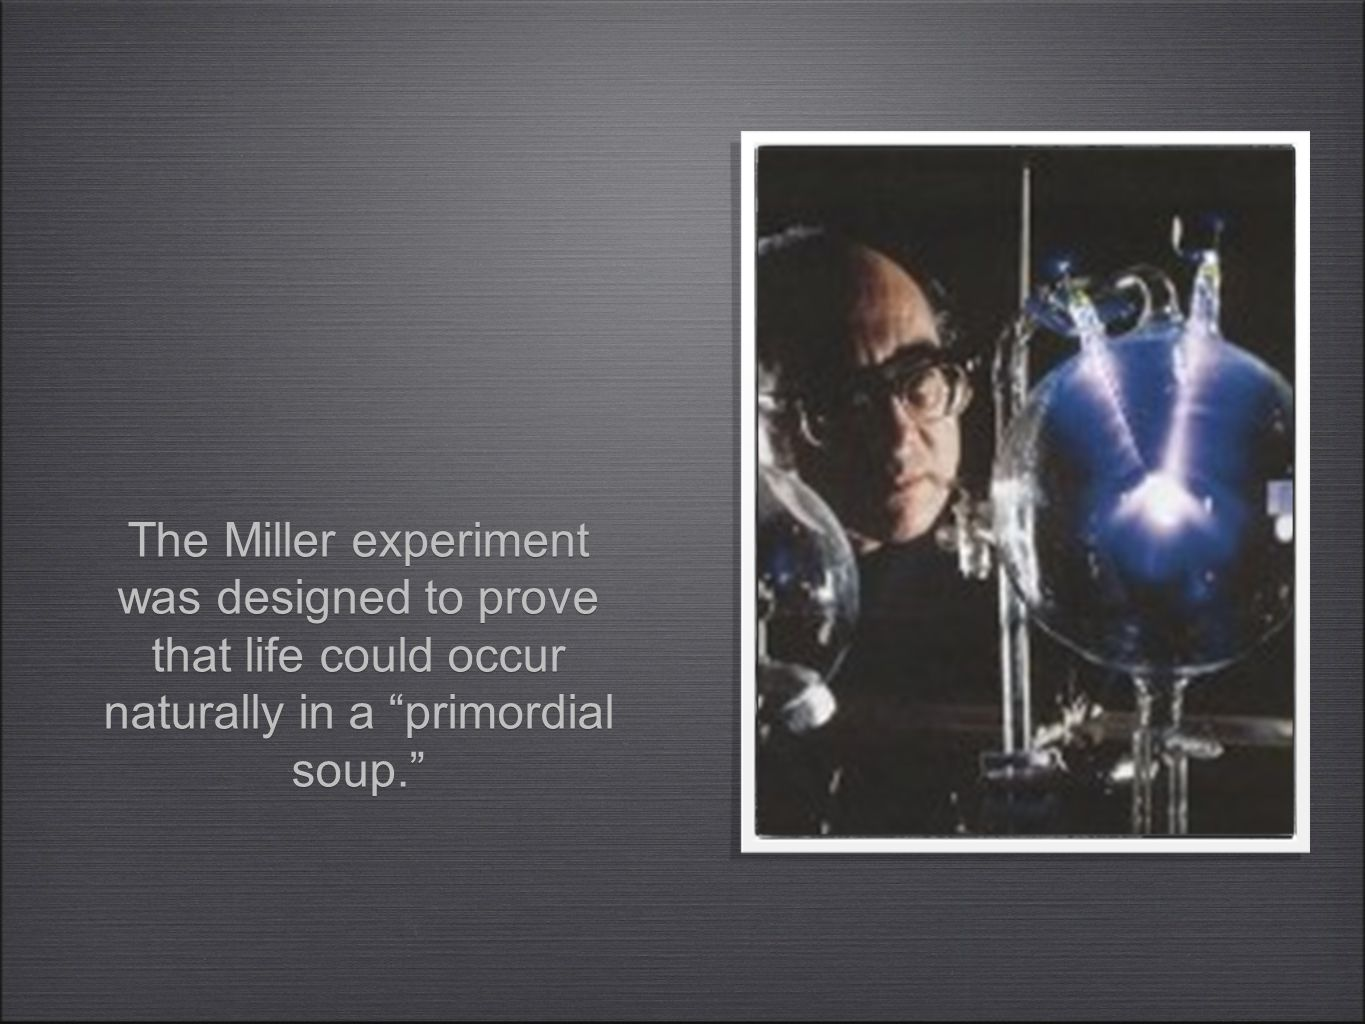 The Miller experiment was designed to prove that life could occur naturally in a primordial soup.